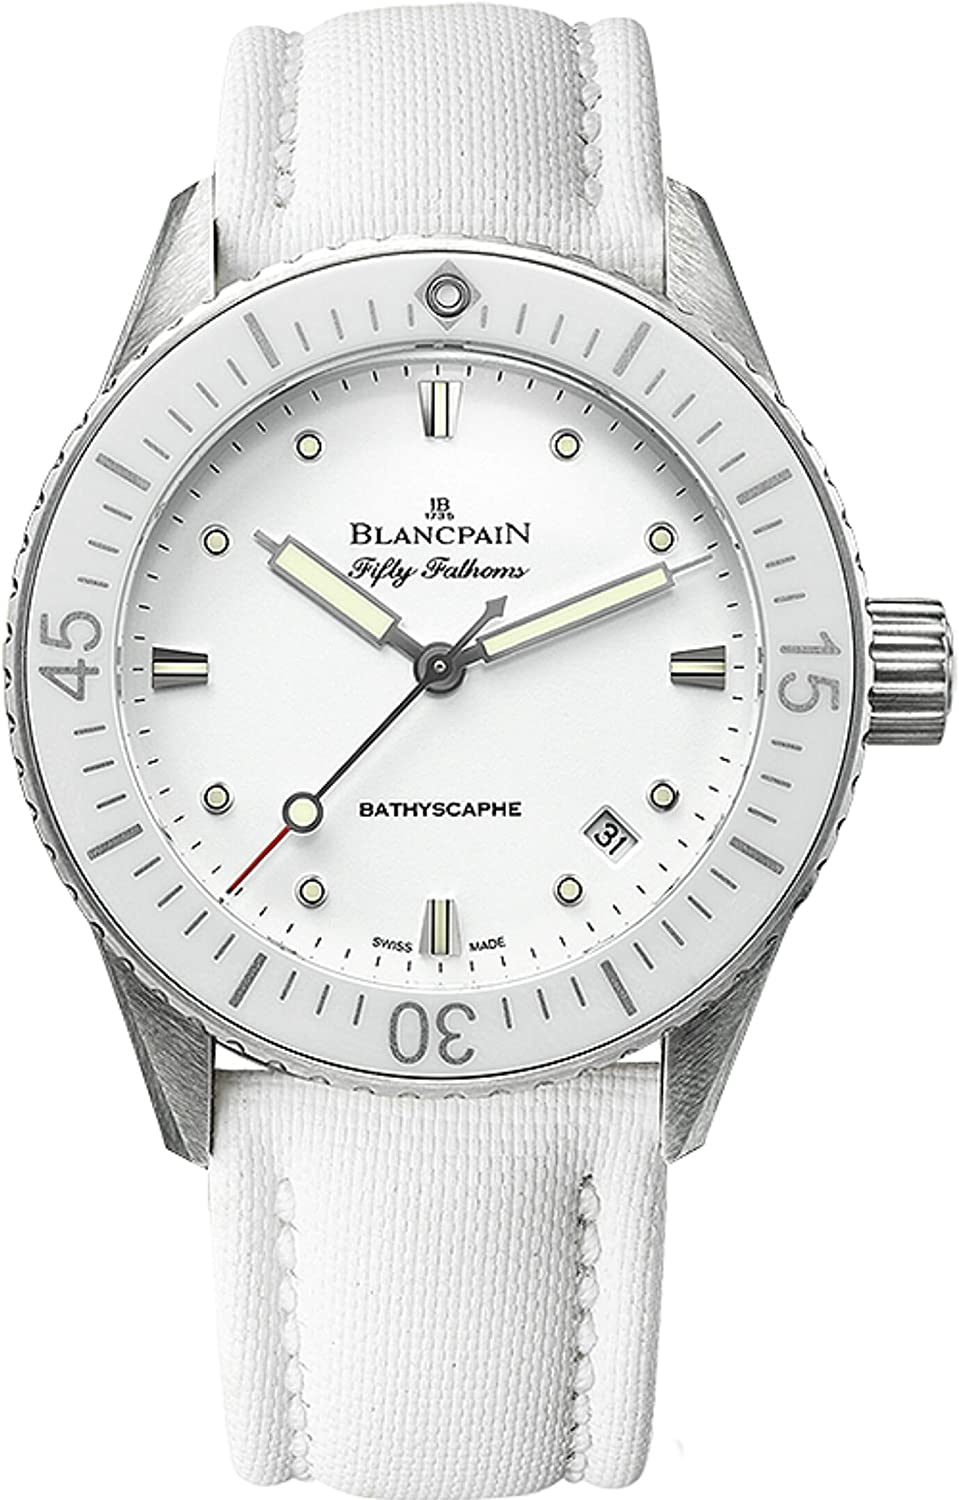 Blancpain Fifty Fathoms Bathyscaphe Automatic 38mm White Ladies Watch 5100-1127-W52A